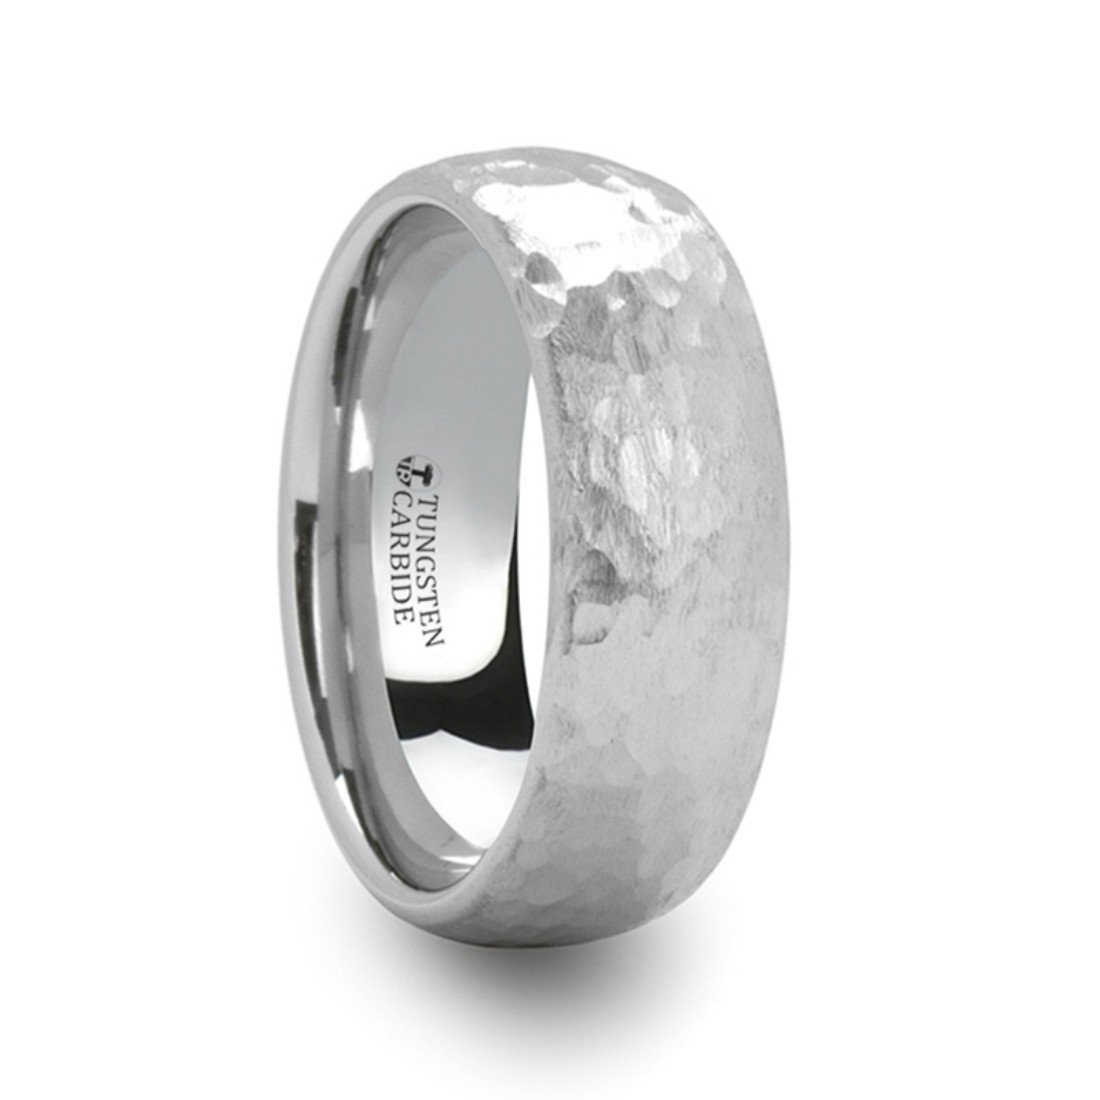 Thorsten Chandler Hammered Finish Domed White Tungsten Ring 8mm Wide Wedding Band from Roy Rose Jewelry Size 9.5 by Thorsten